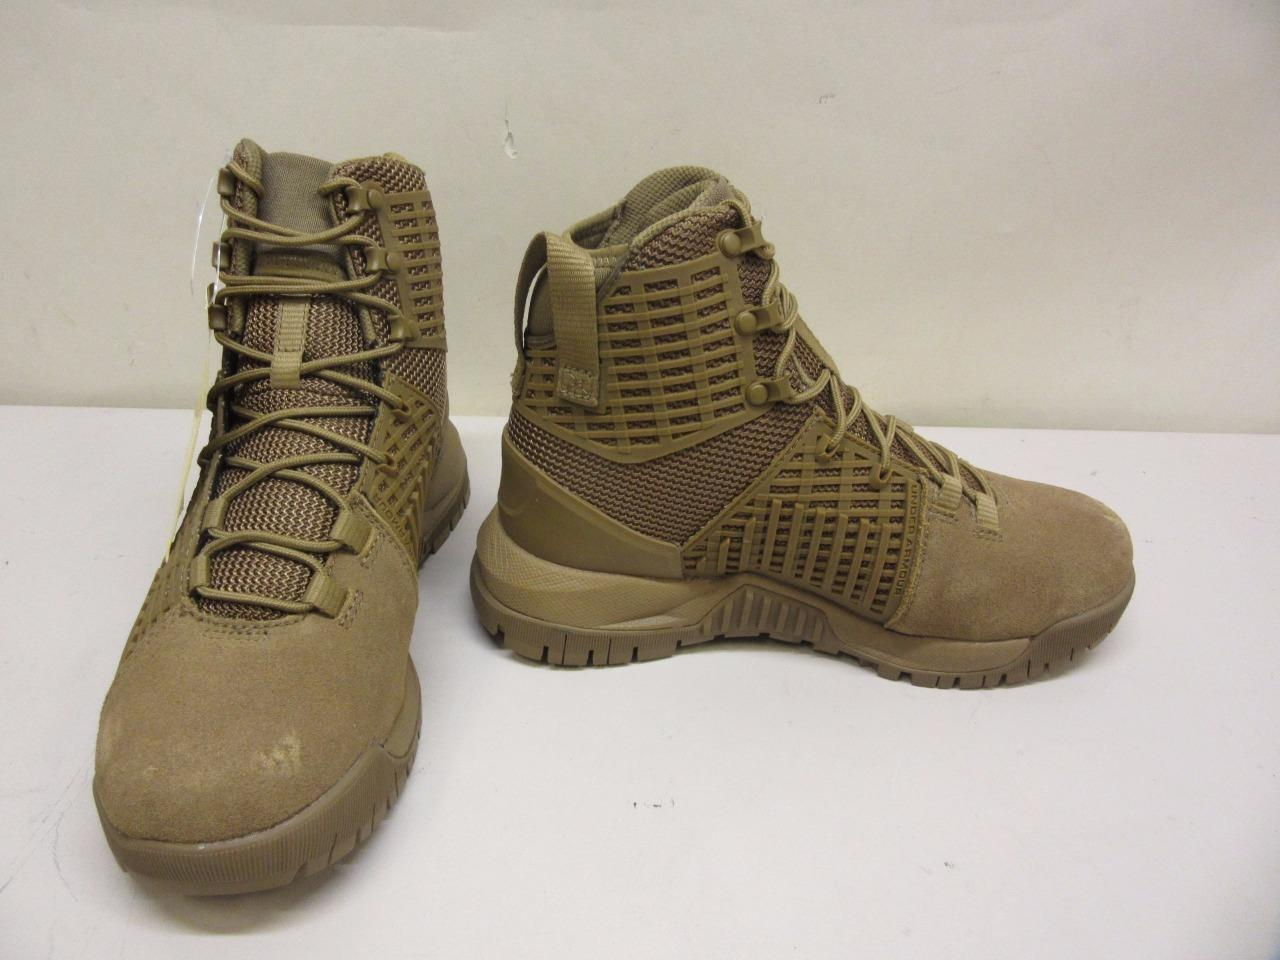 Under Armour Stryker Women's Size 7 SMS Sample Hiking Boots Shoes Tan